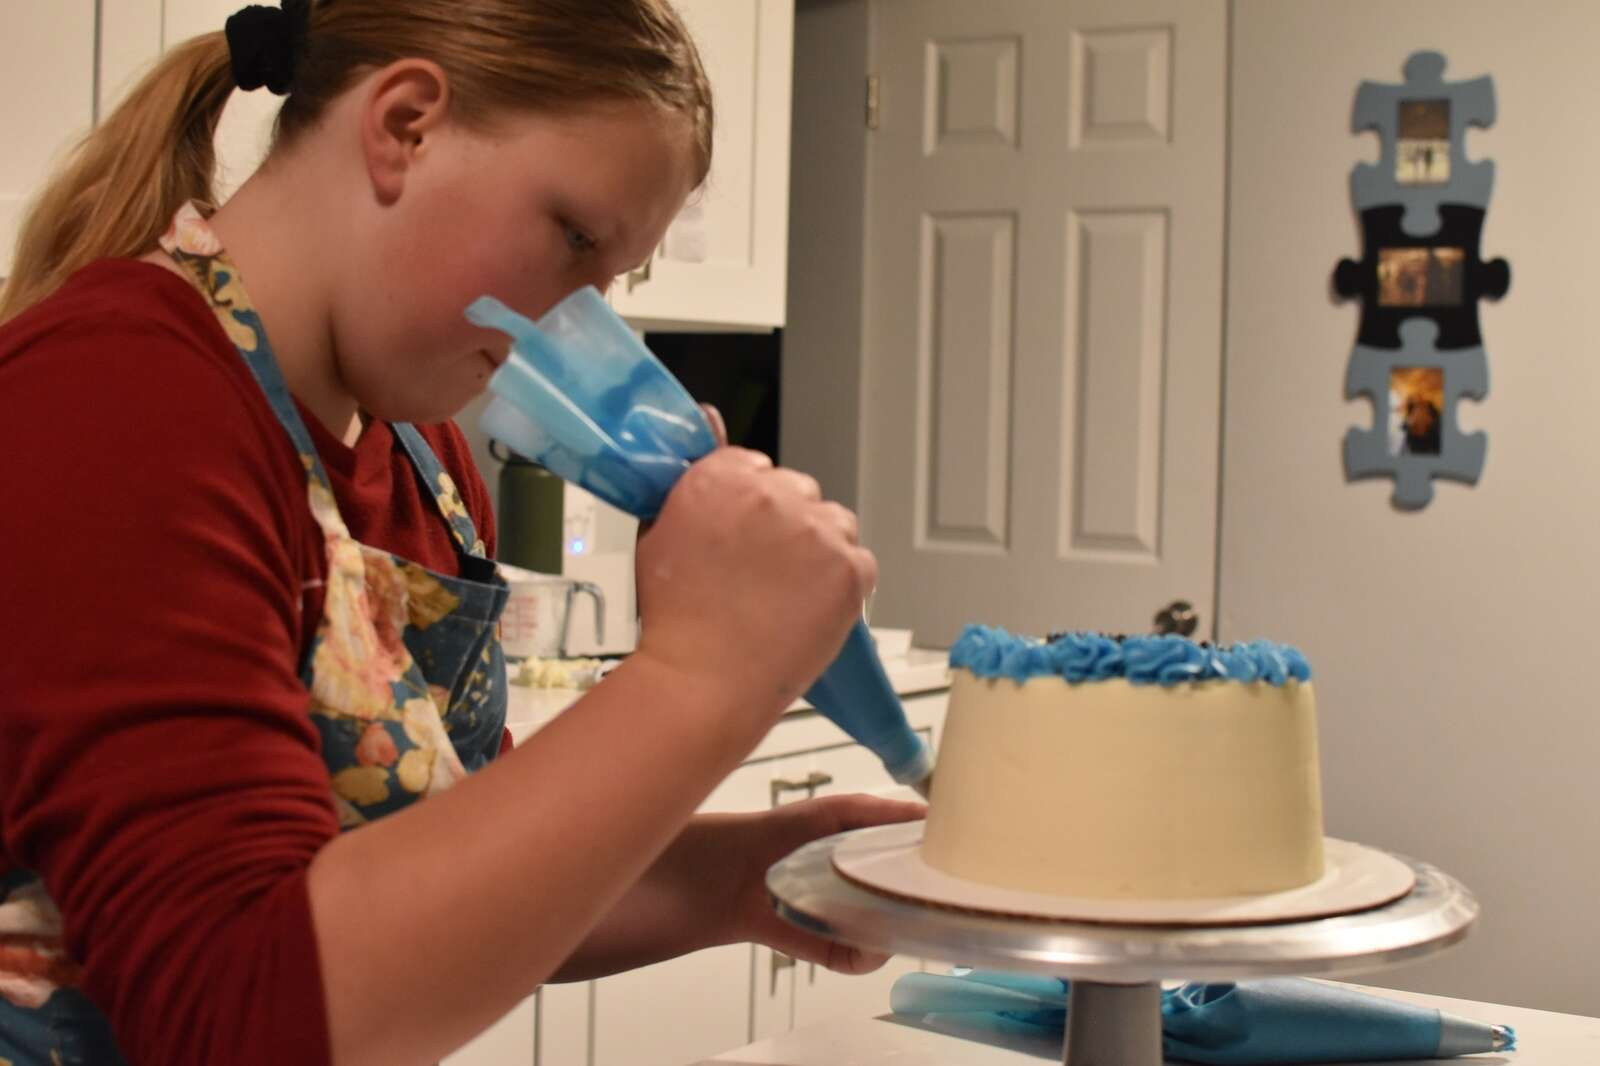 River Close pipes out a border onto the base of one of her cakes. River says she recently mastered applying borders to her cakes on Wednesday, Dec. 2. | Photo by Steven Josephson / sjosephson@summitdaily.com